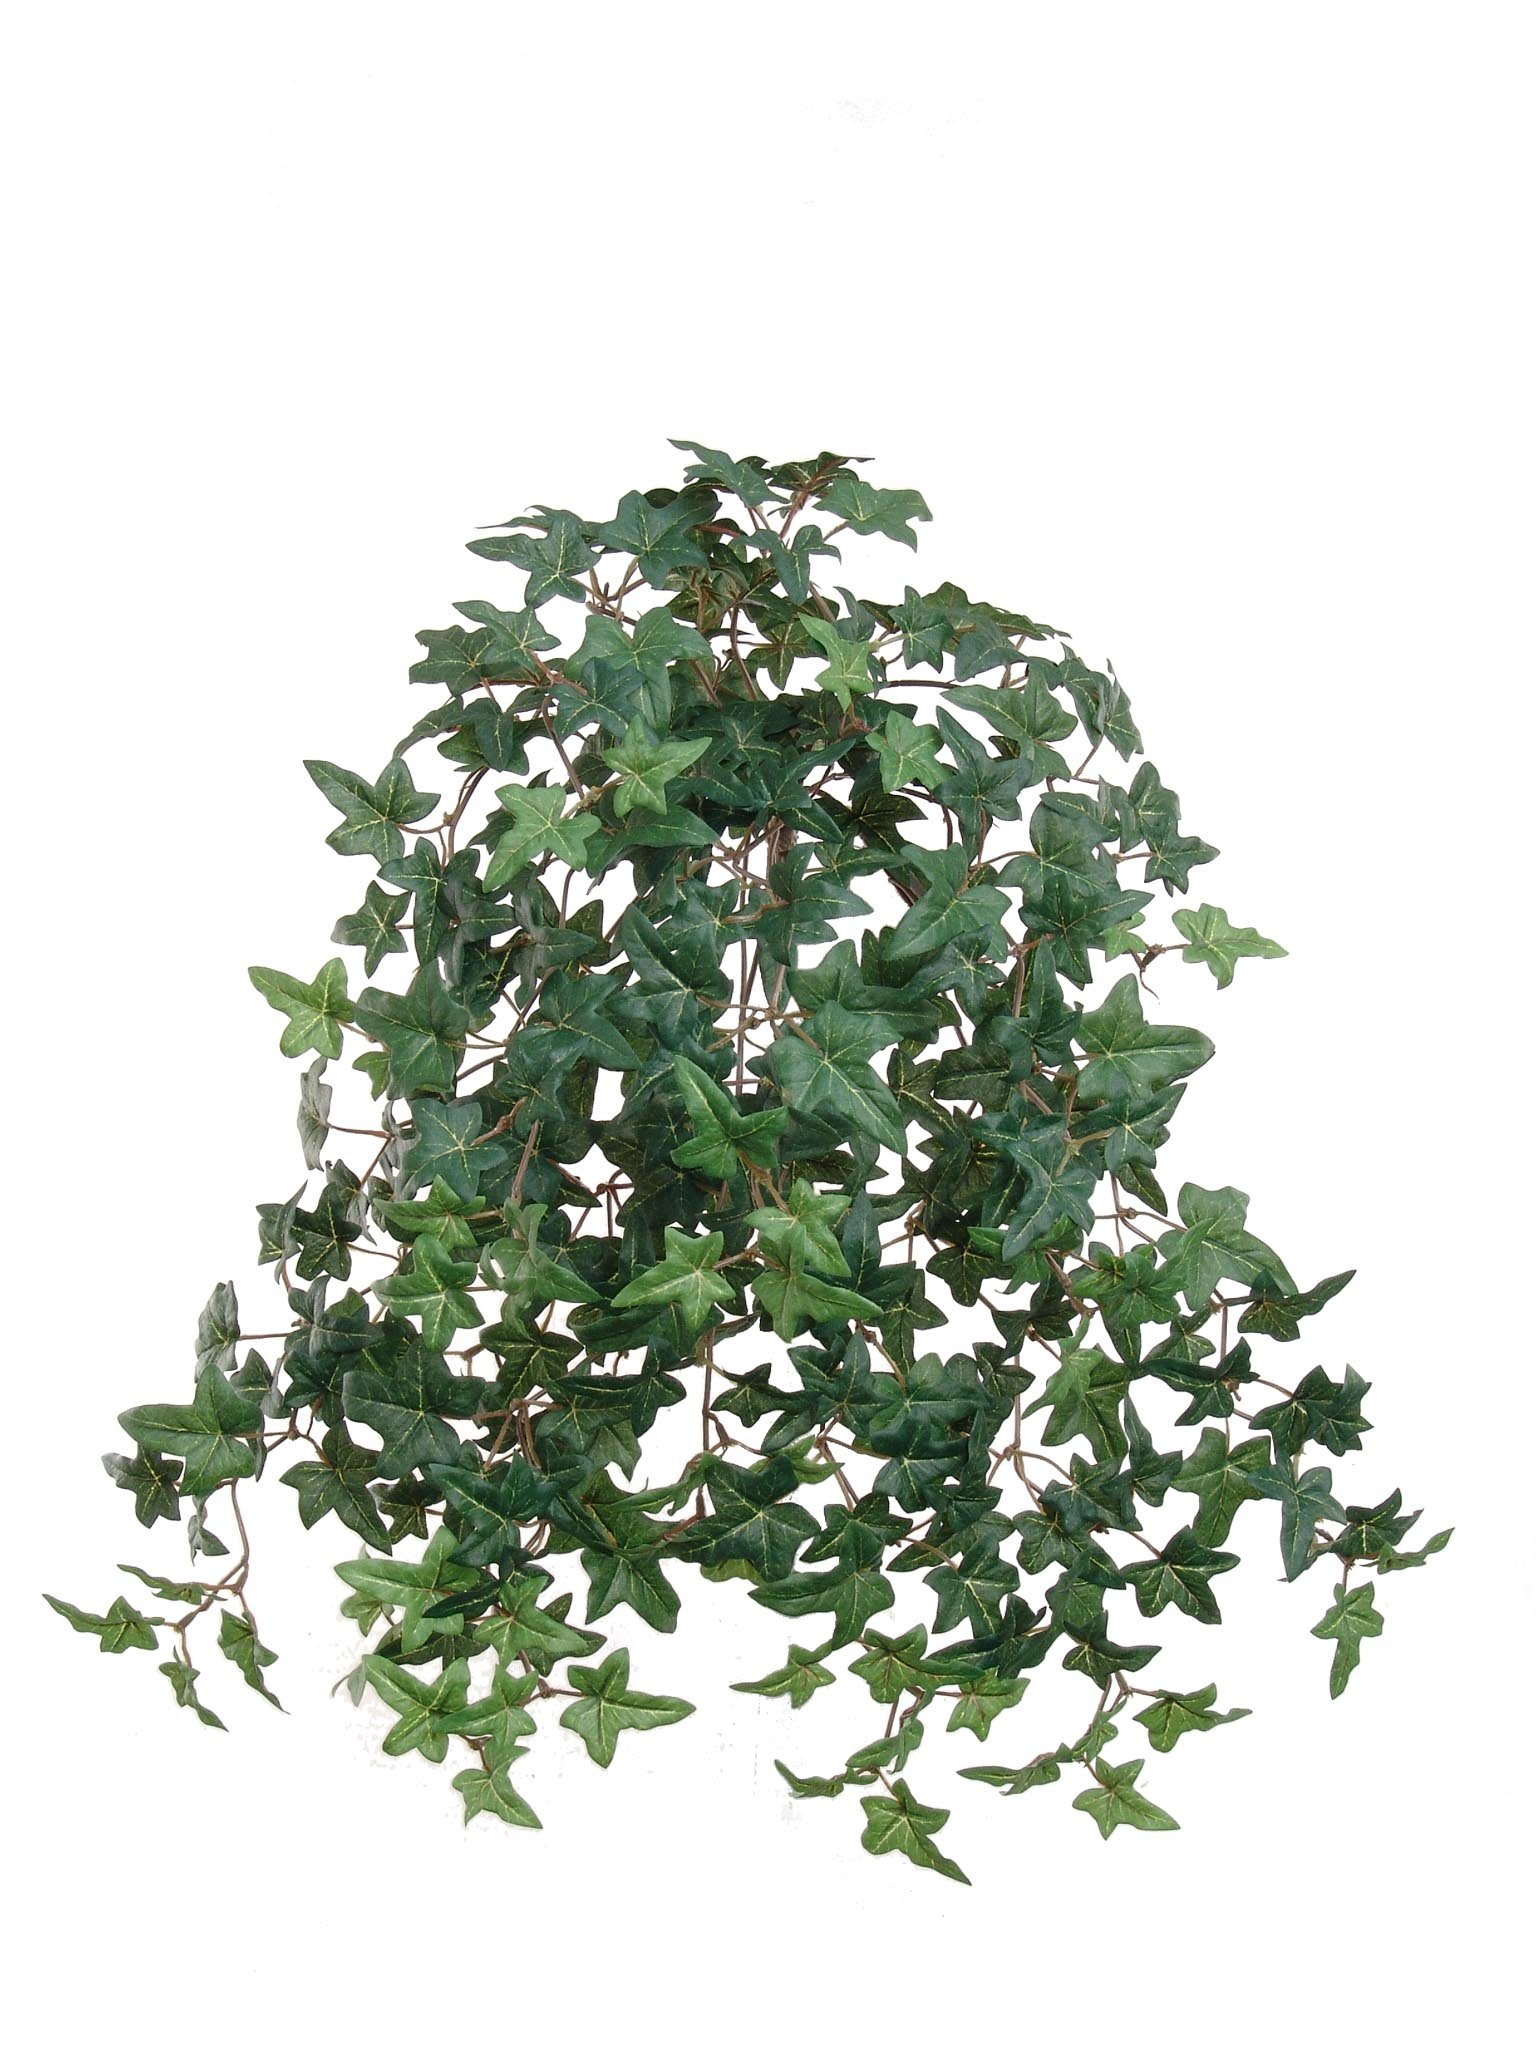 Larksilk 20'' Artificial English Ivy Plant 12-Pack - 12 Small Artificial Plants with Silk Greenery Faux Ivy Vines - 12 Artificial Ivy Plants with 274 Fake Ivy Leaves Each by Larksilk